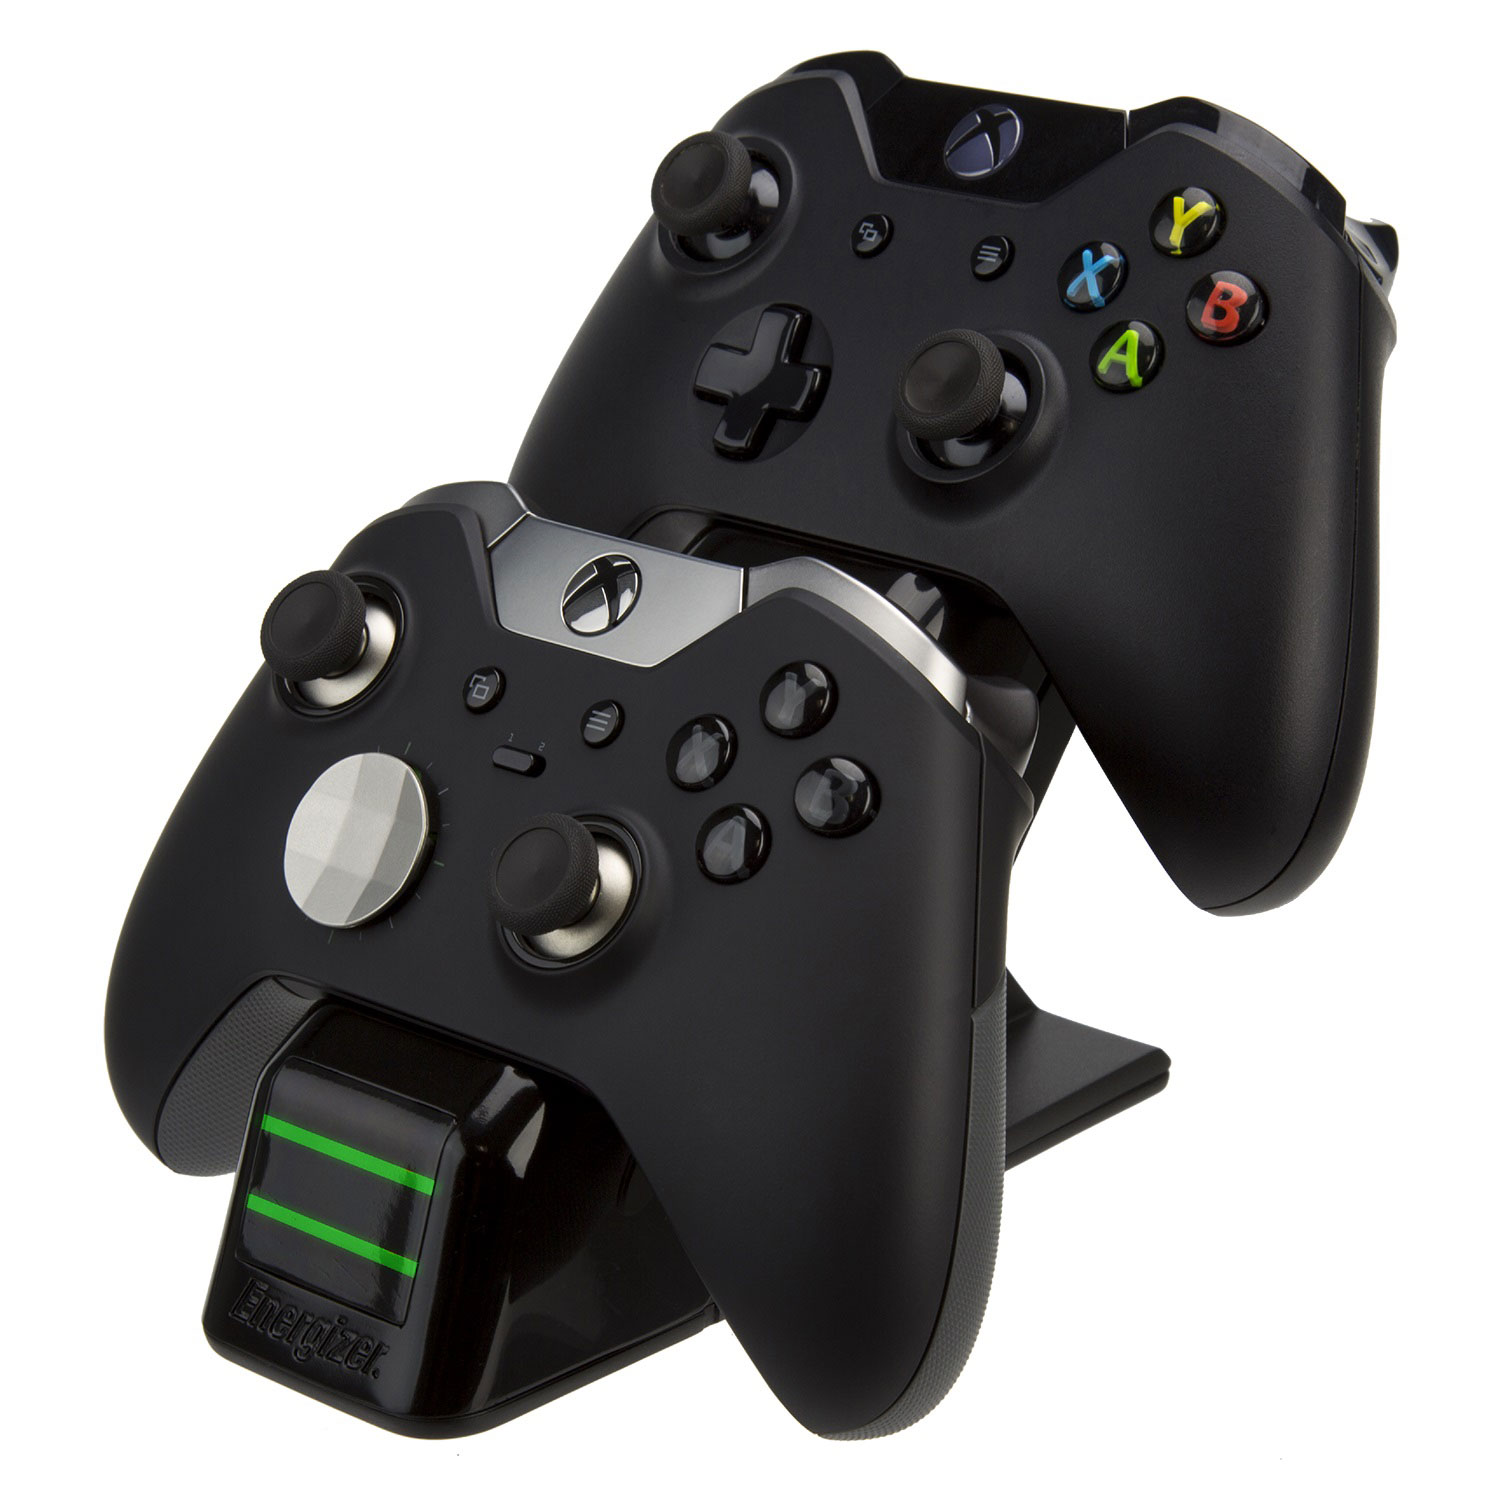 Energizer Controller Charging Station For Xbox One Power Playstation 3 Diagram Remote Control Circuit Supplies Battery Packs Best Buy Canada